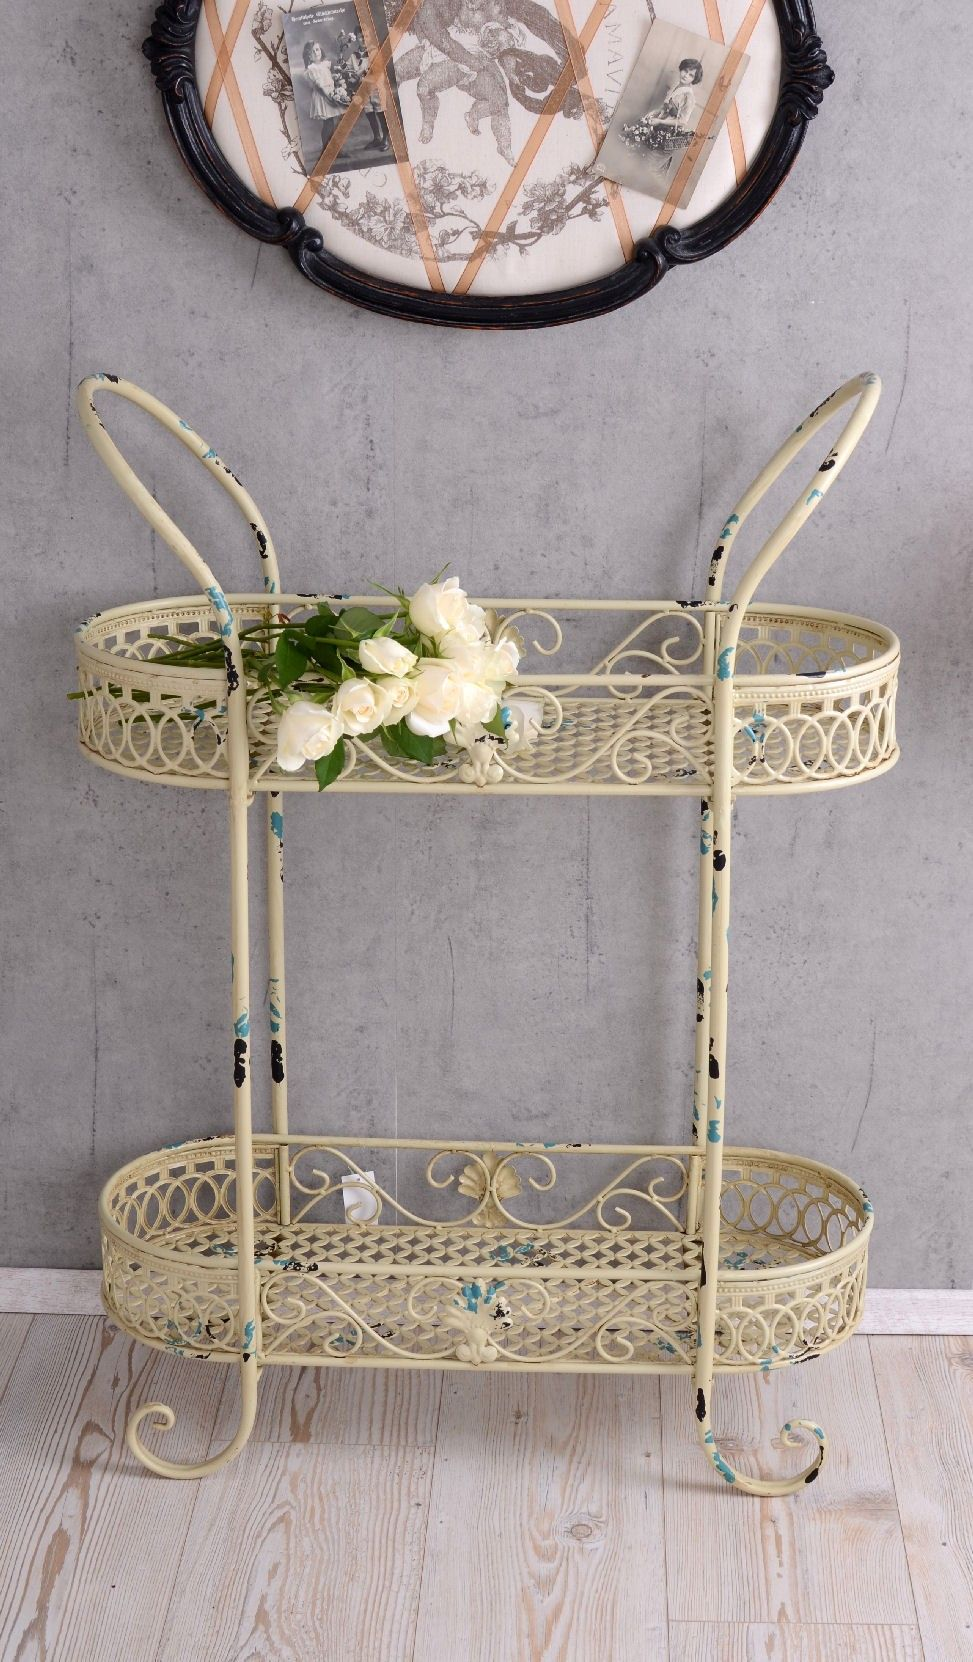 etagere shabby chic blumentreppe blumenetagere metallregal. Black Bedroom Furniture Sets. Home Design Ideas